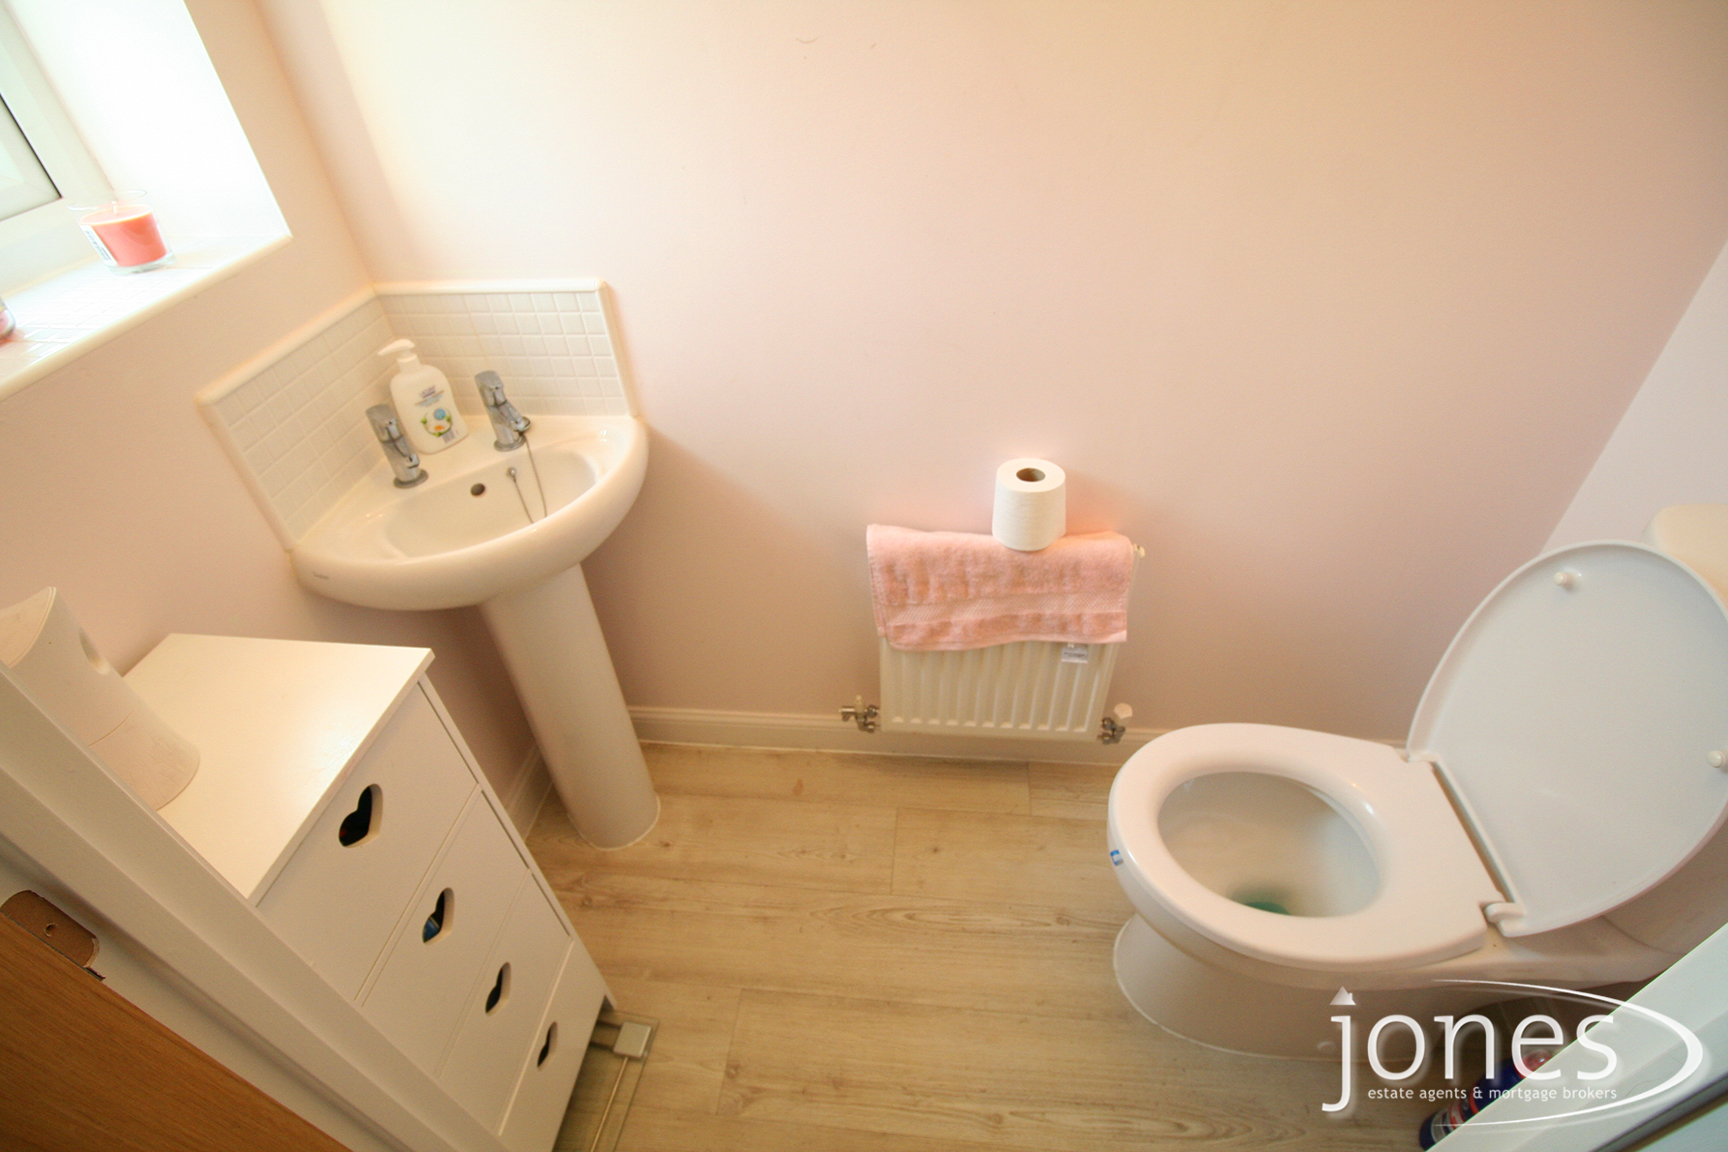 Home for Sale Let - Photo 06 Aristotle Drive, Stockton on Tees,  TS19 8GH